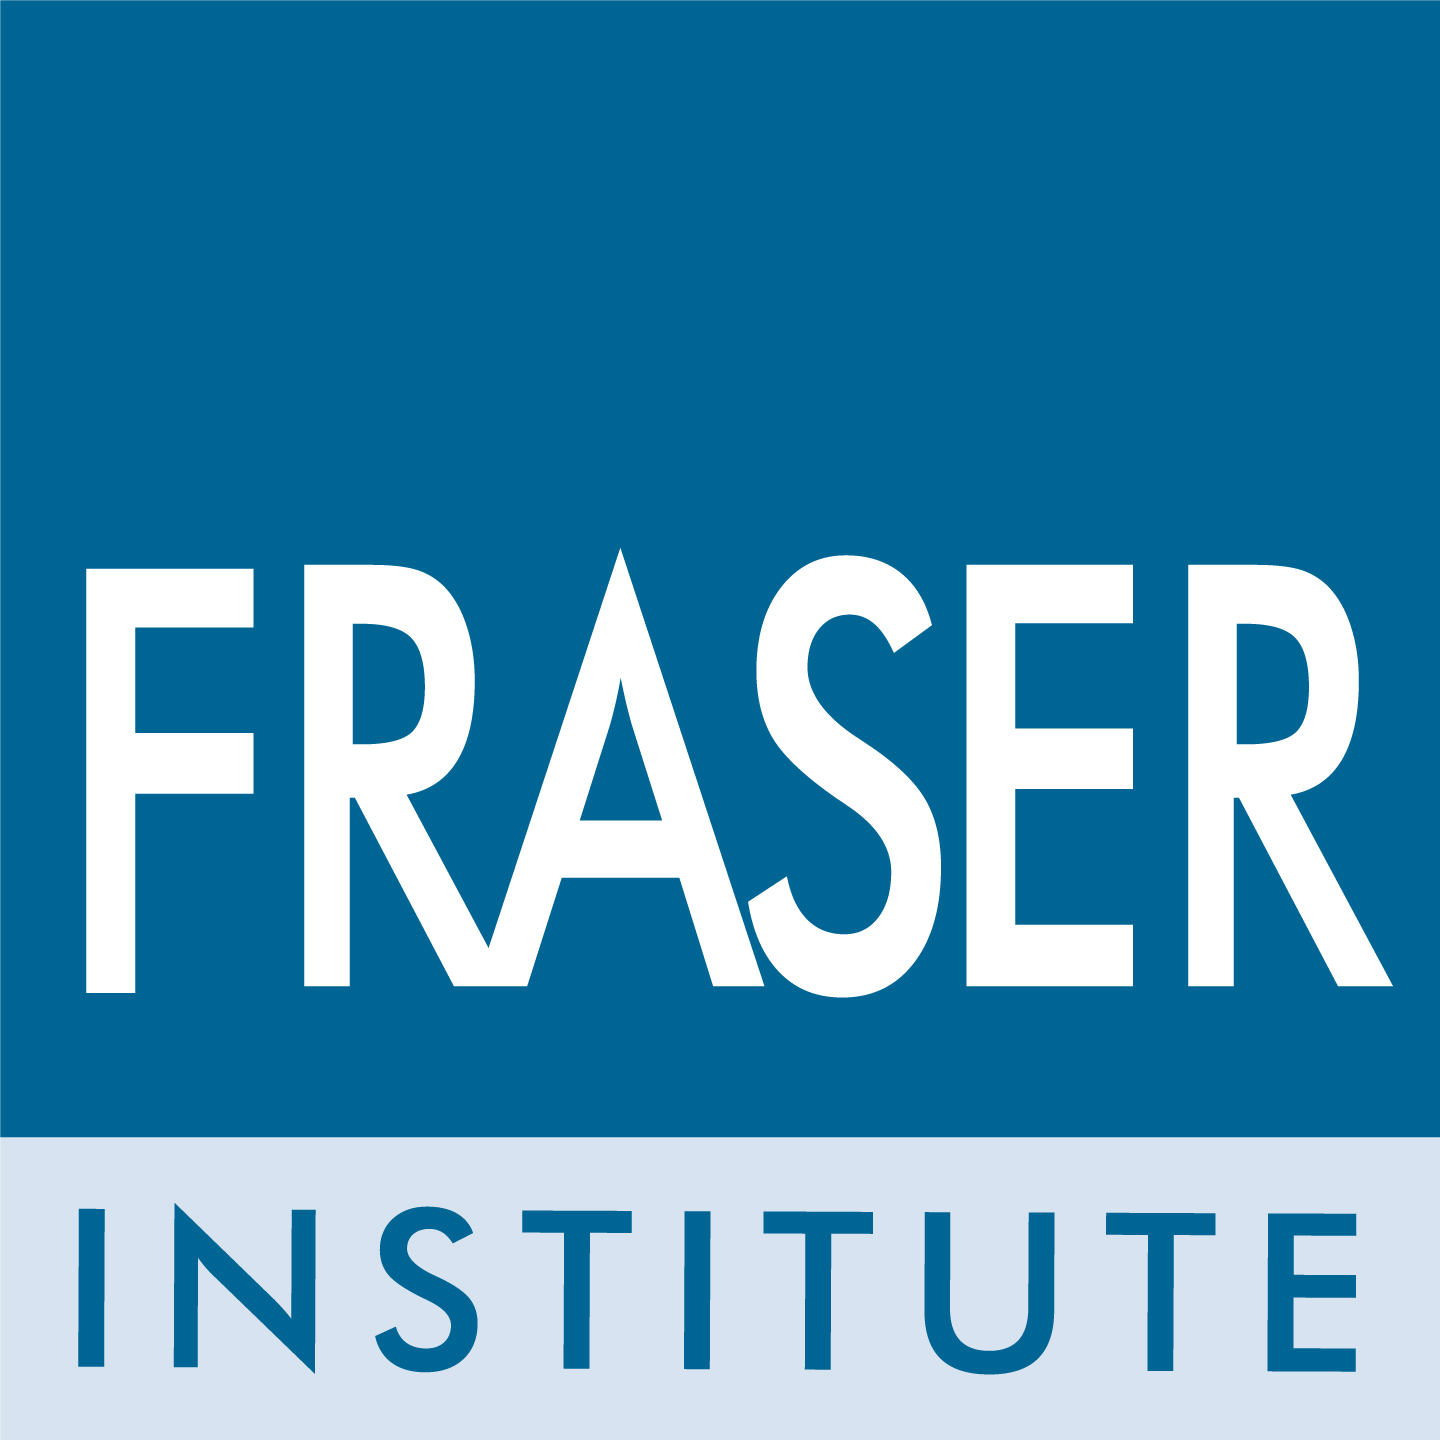 Fraser Institute Media Advisory: Fraser Institute's ranking of Ontario elementary schools coming Sunday, March 15